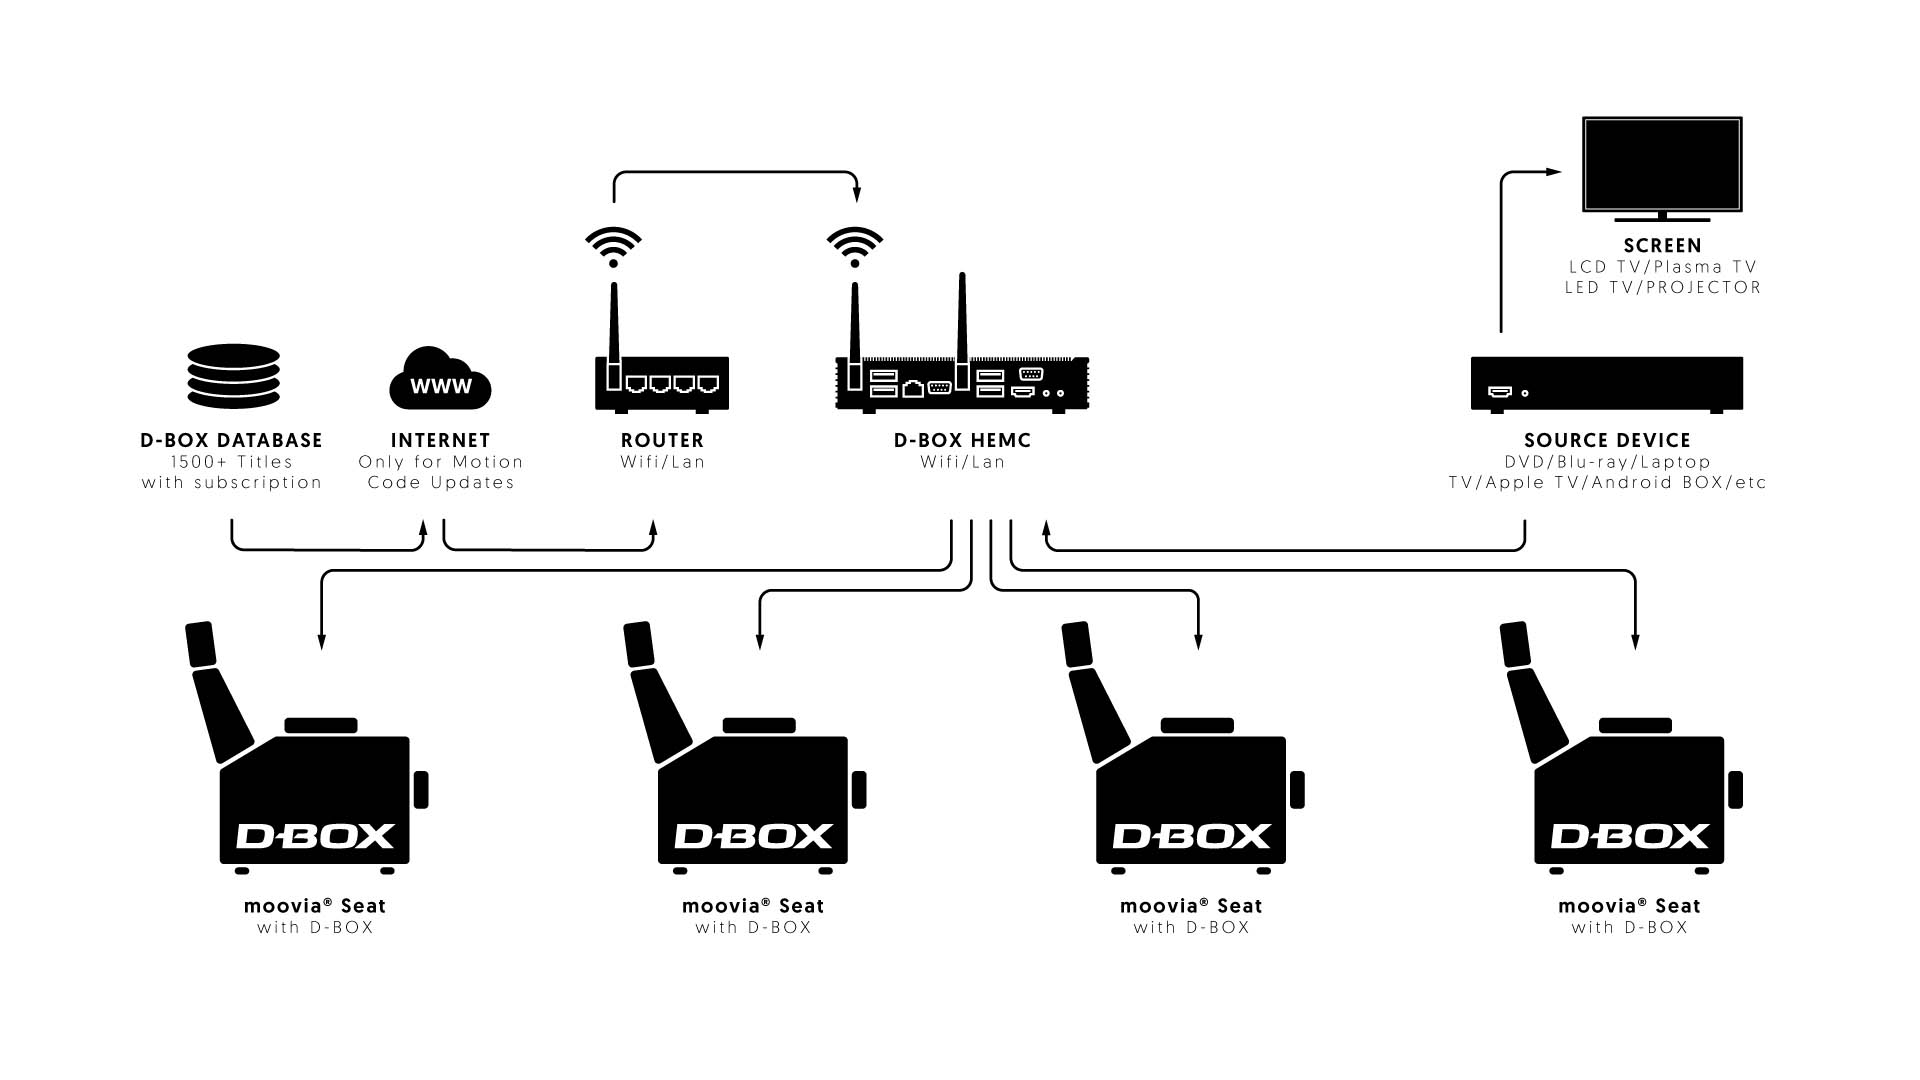 d-box schematic connection explain